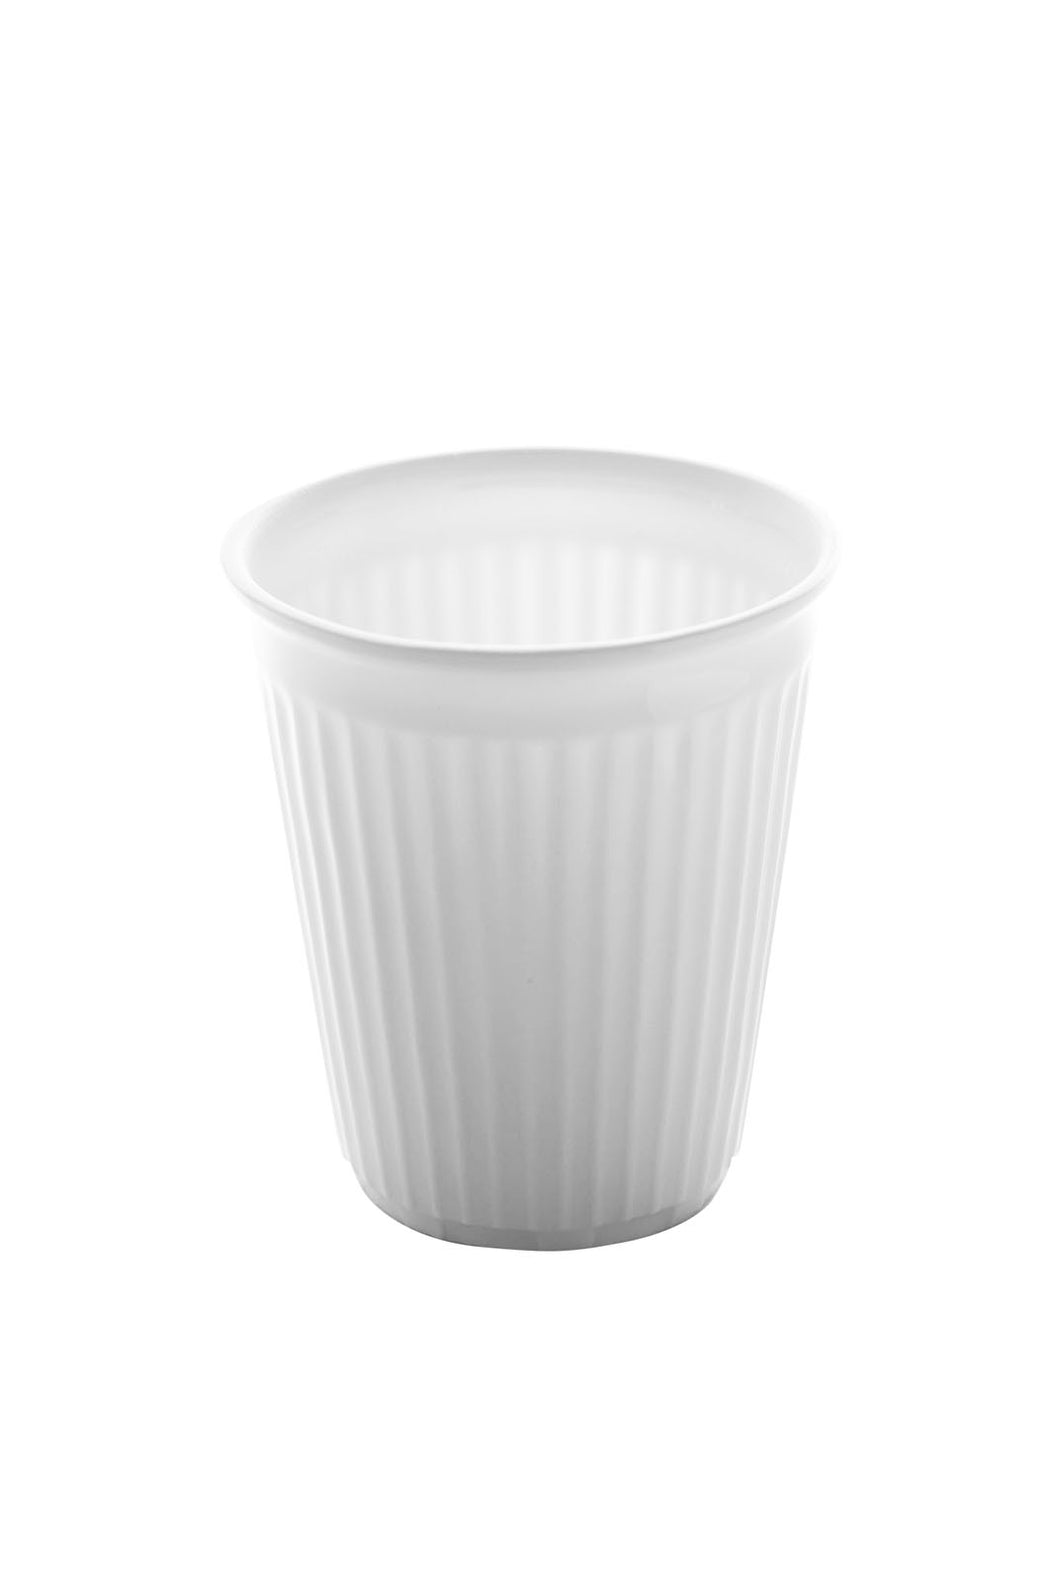 Serax - Geometry Collection - Porcelain Crease Beaker - Small - White